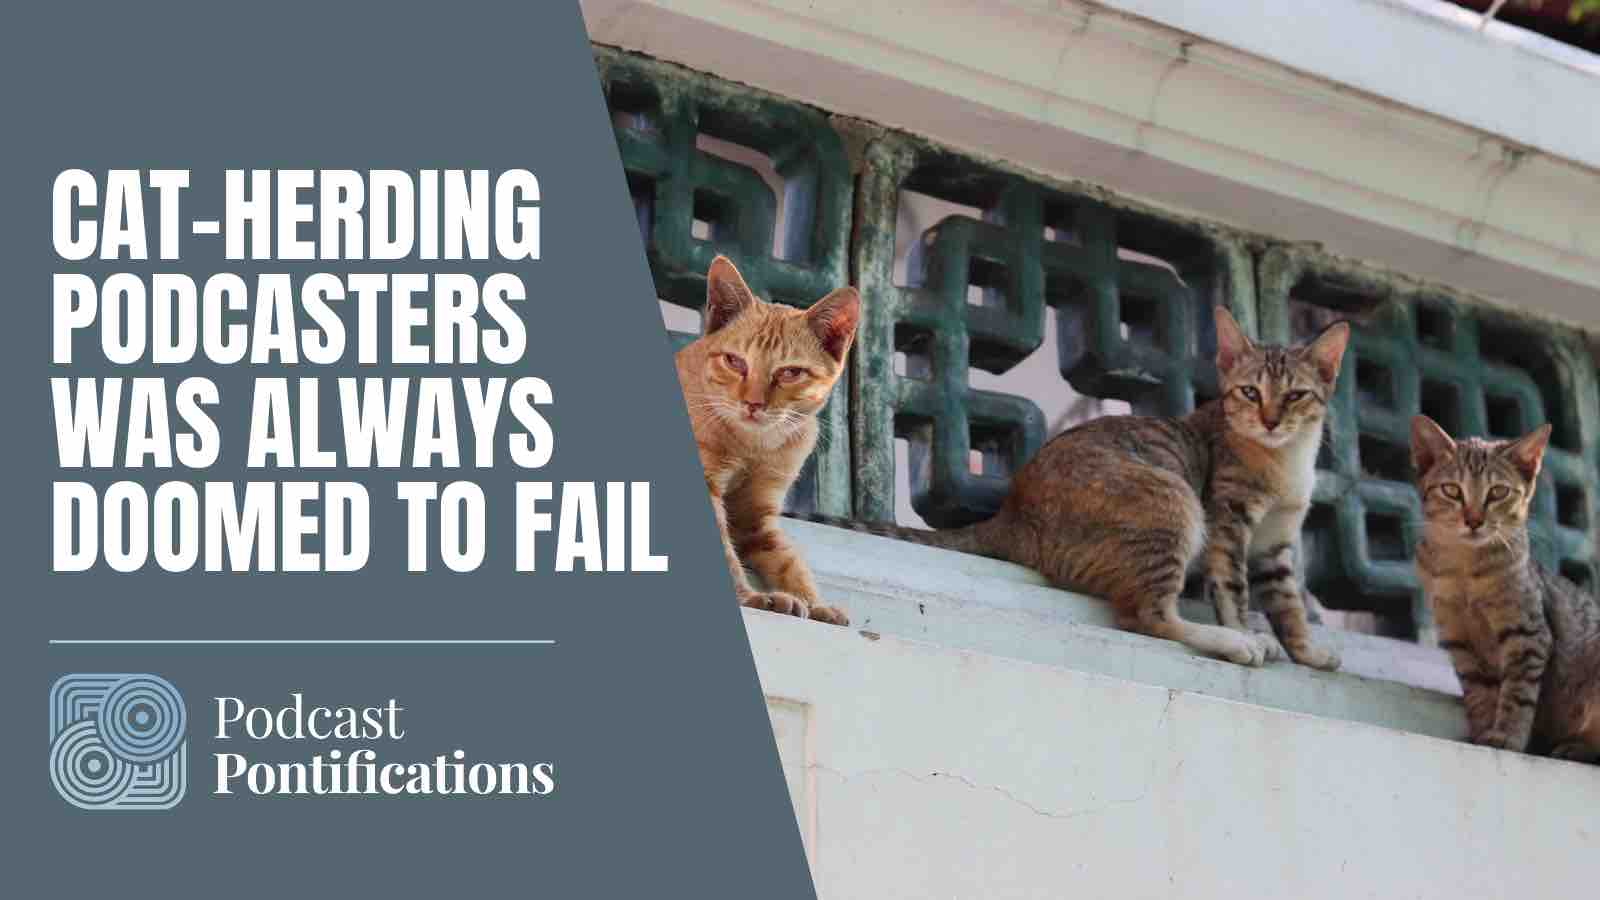 Cat-Herding Podcasters Was Always Doomed To Fail